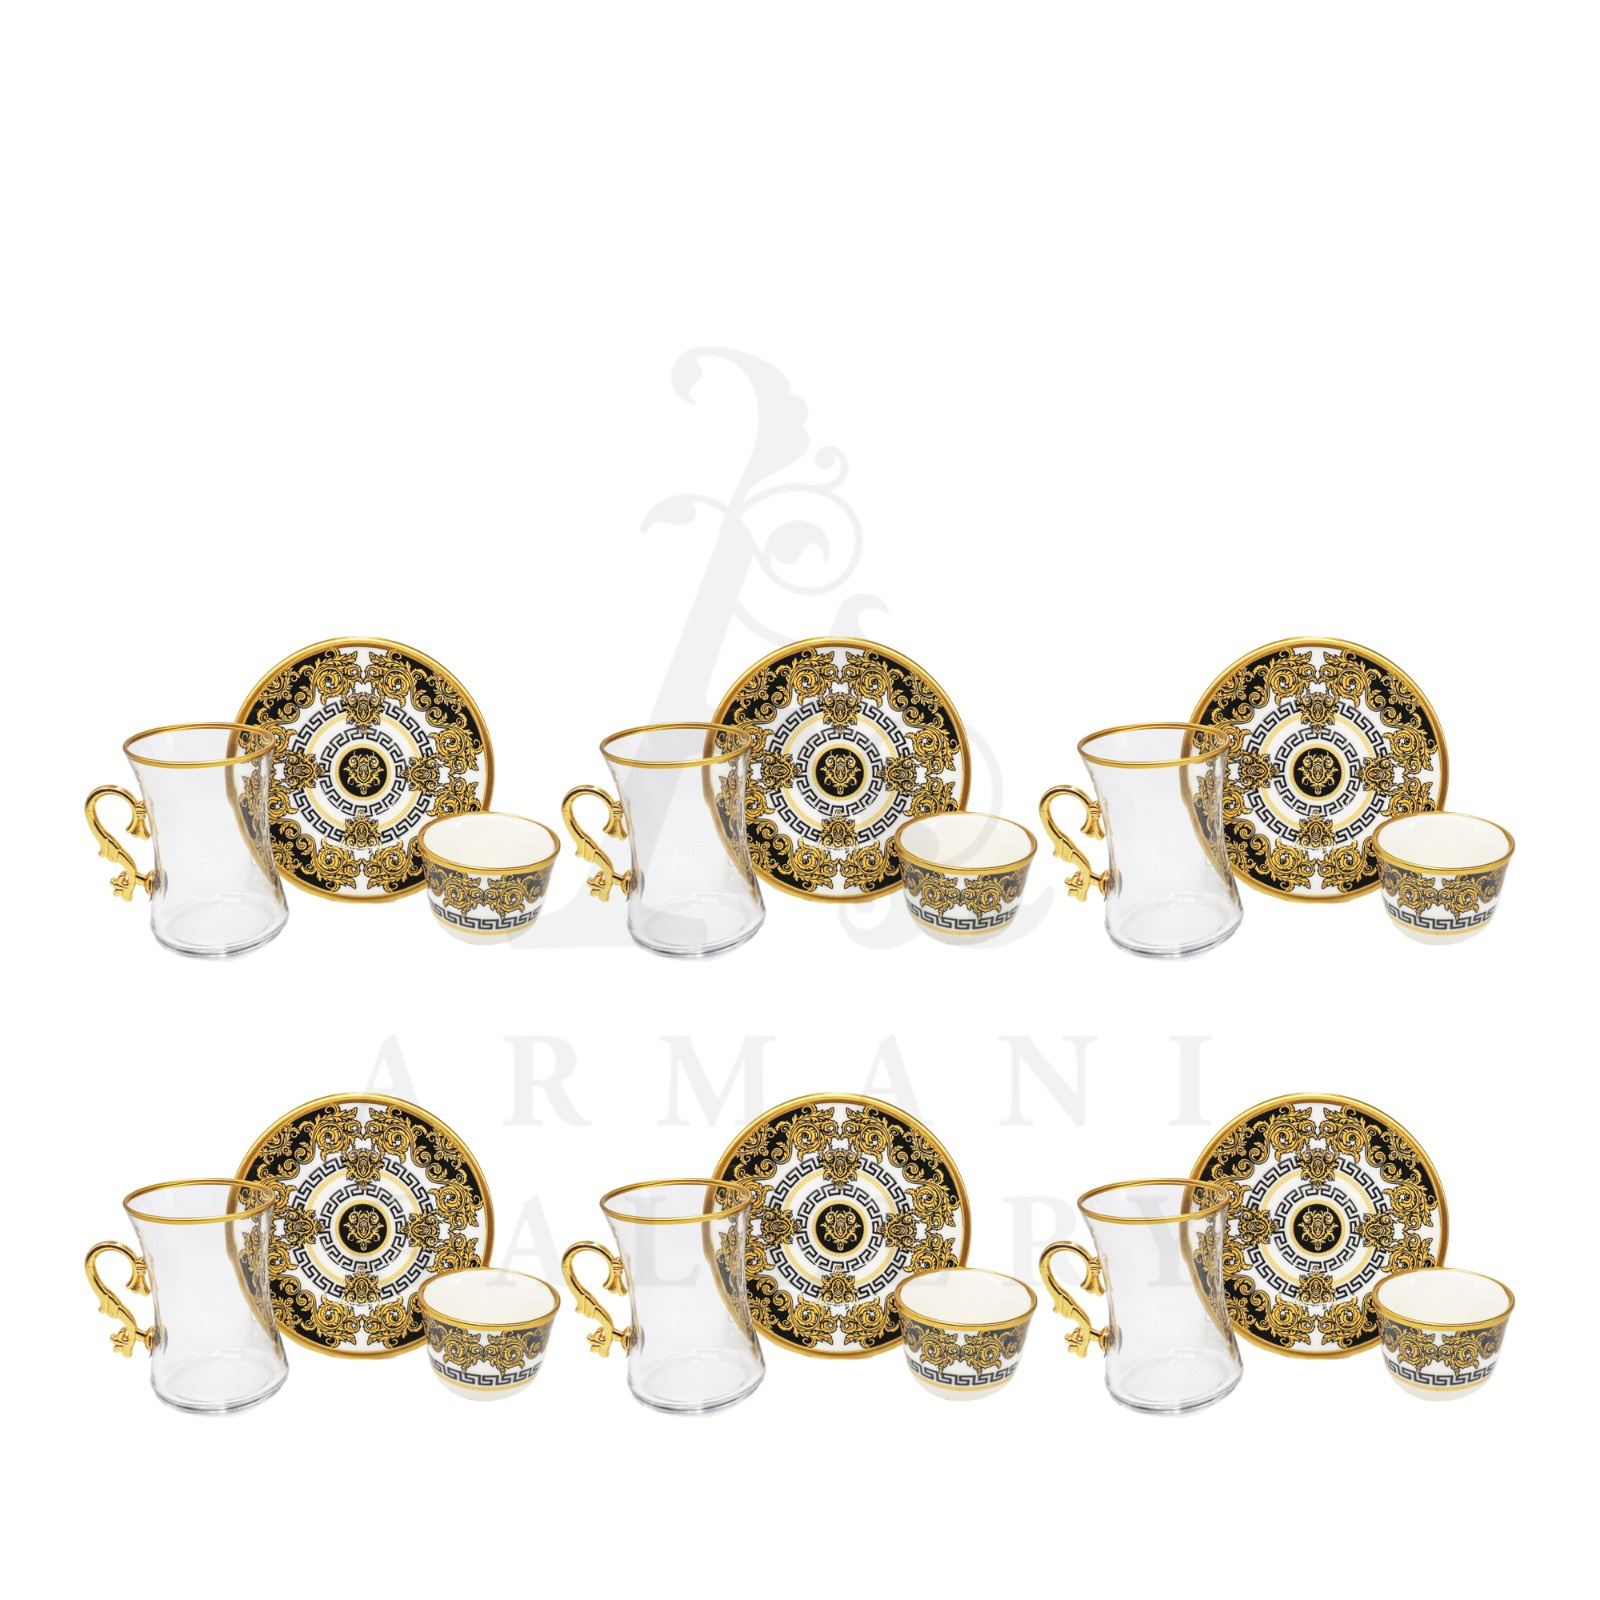 Buy Coffee and Tea Cup with Handle Set Versace Gold and Black S3 18 Pcs